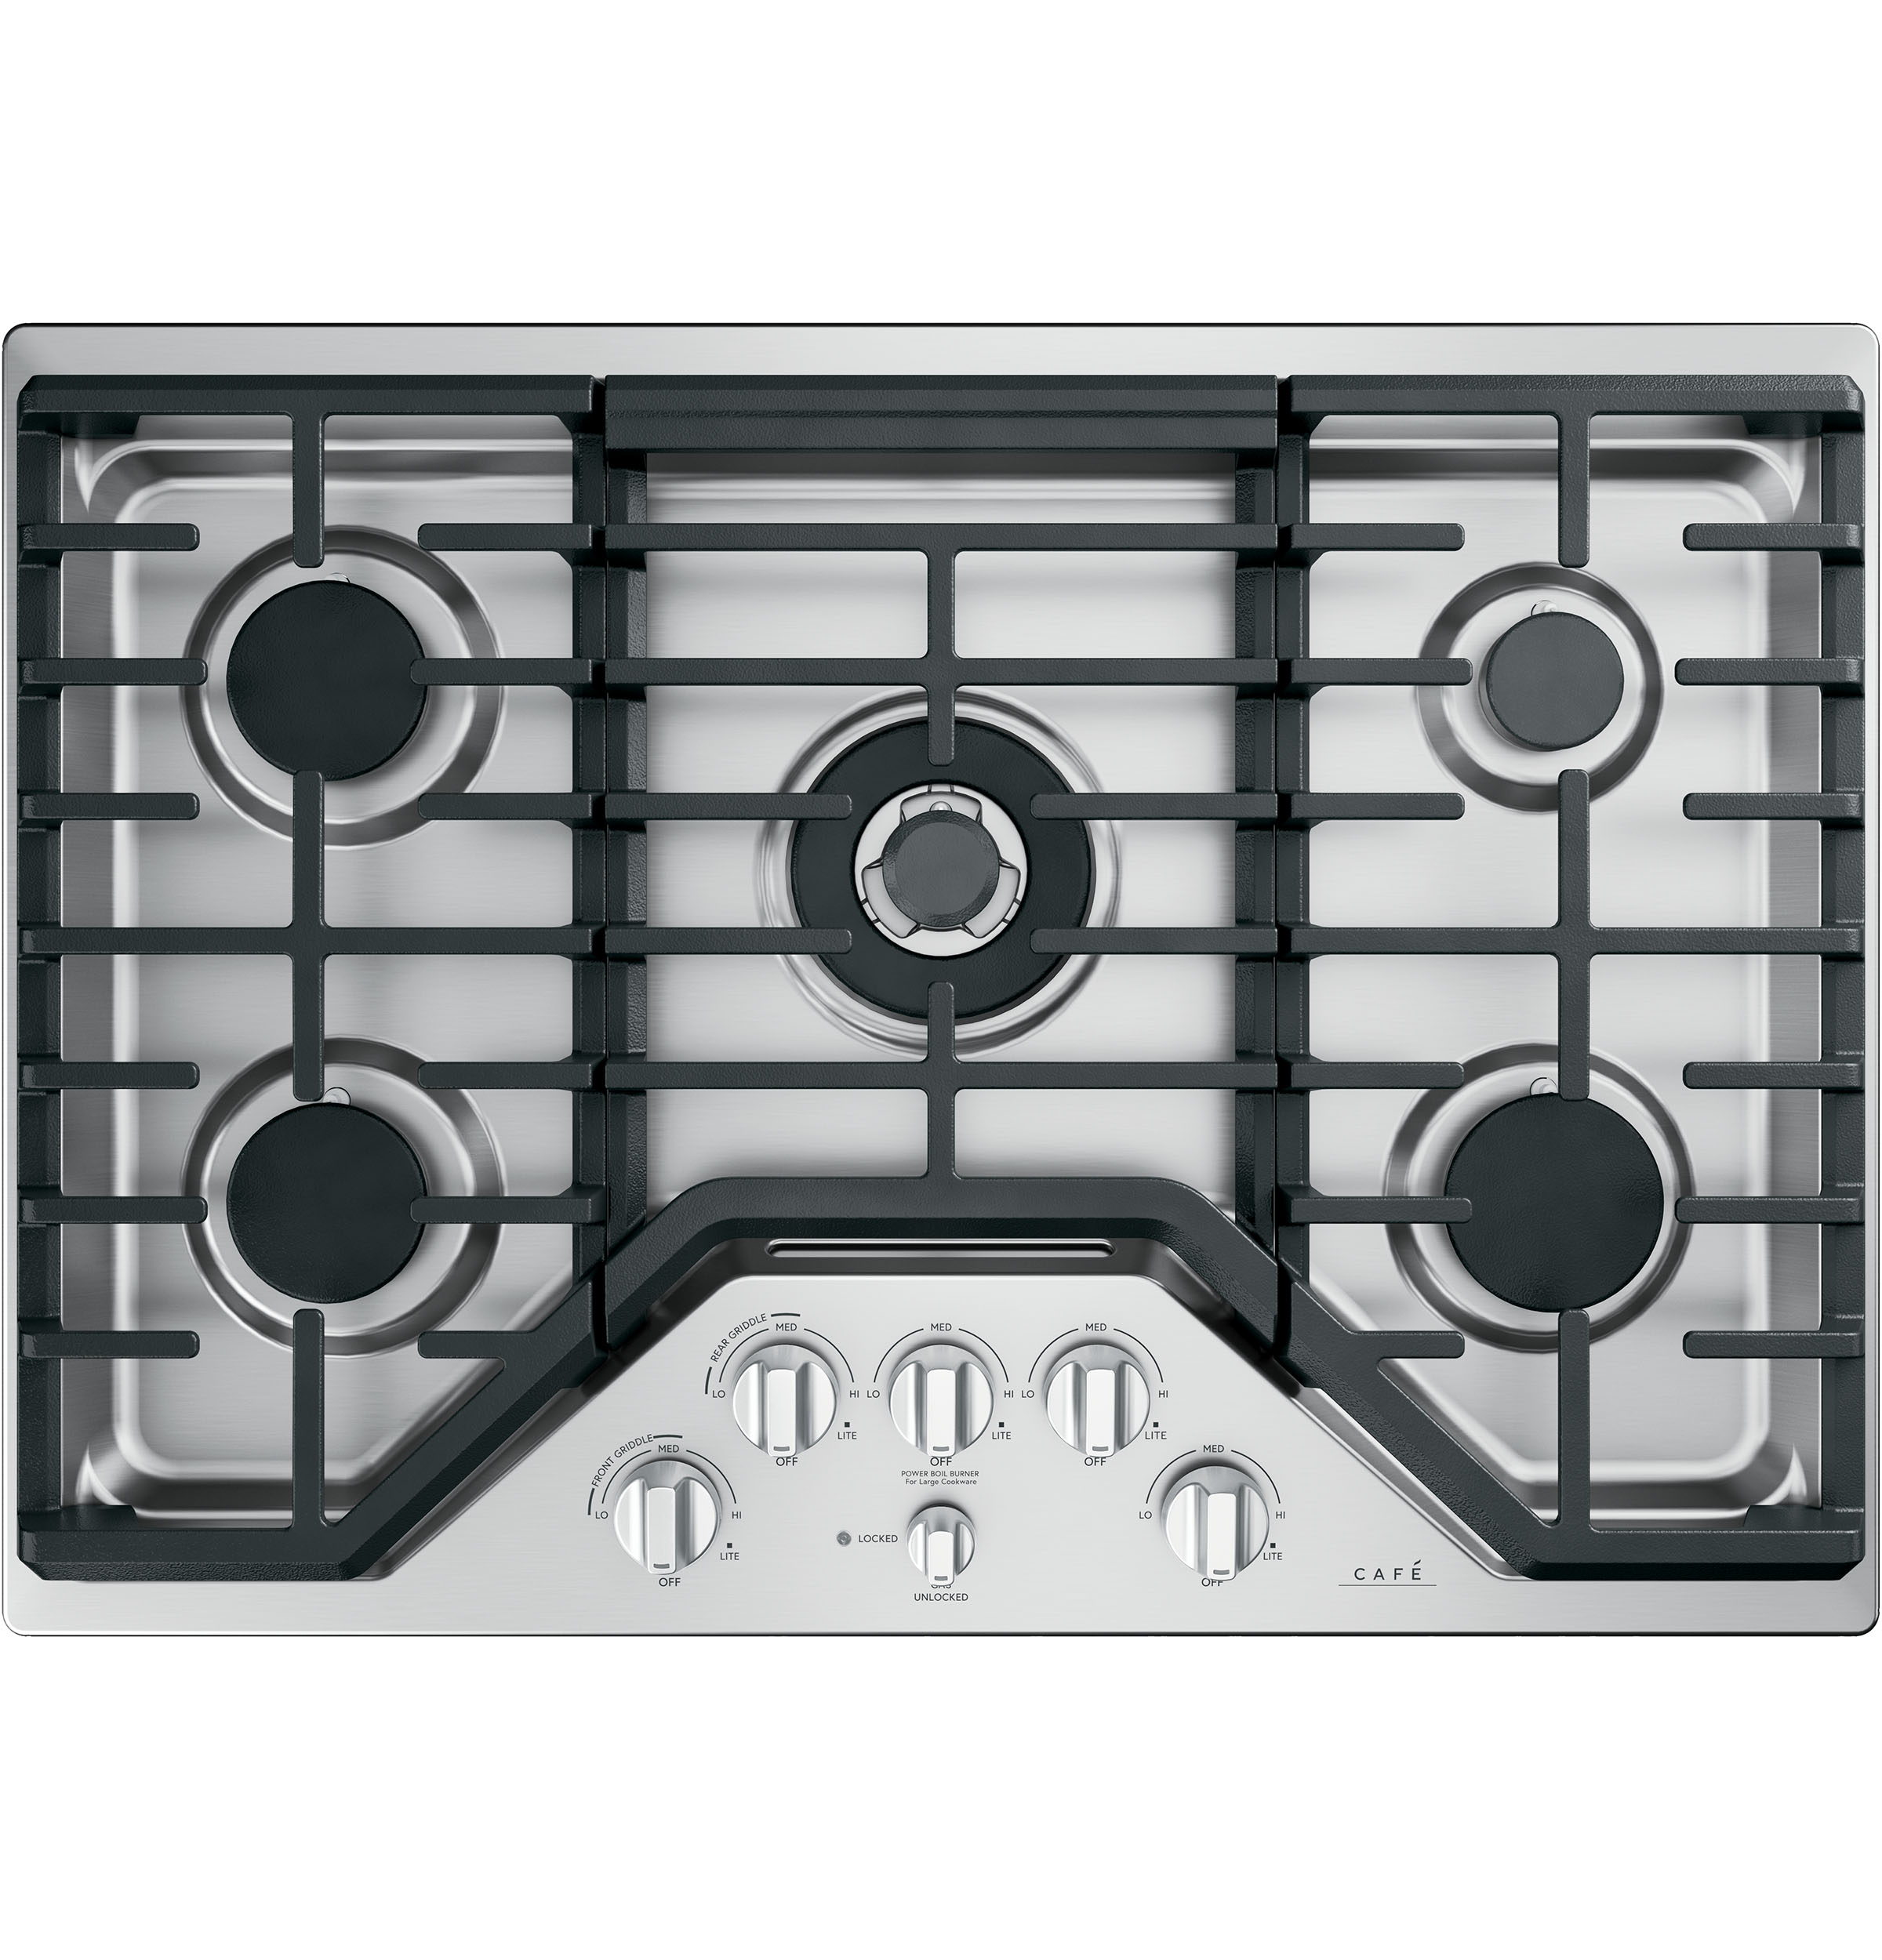 Cafe 5 Gas Cooktop Knobs - Brushed Stainless